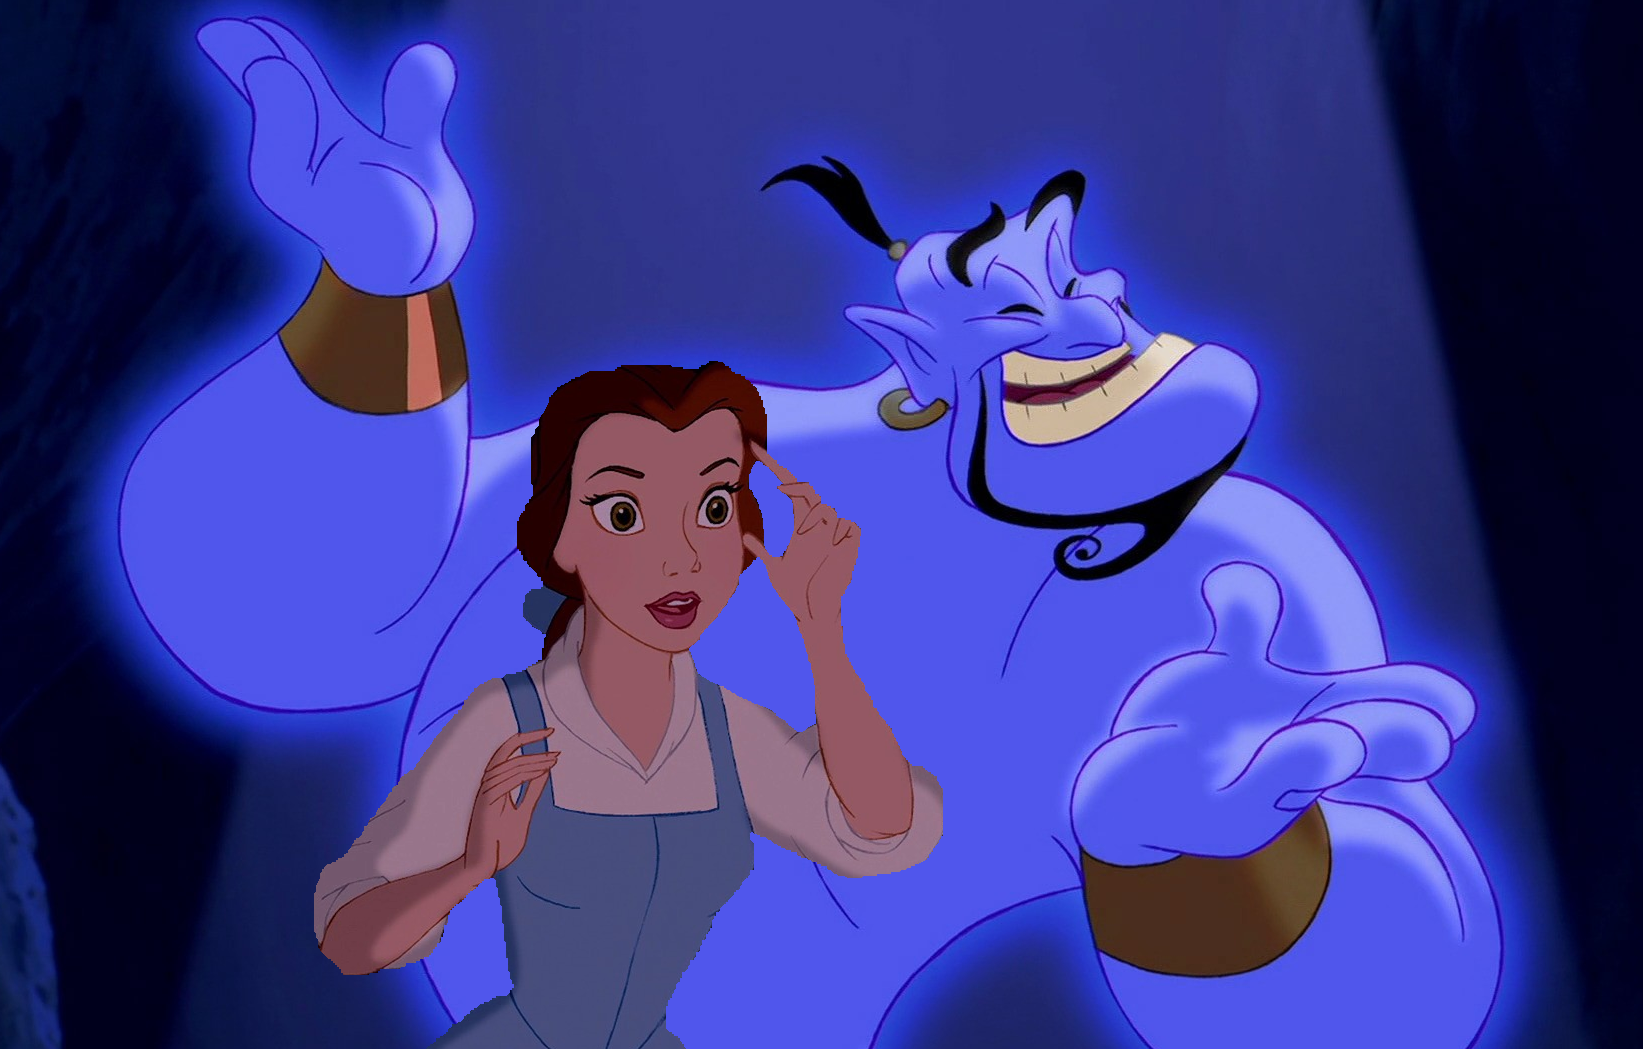 Belle meets the Genie